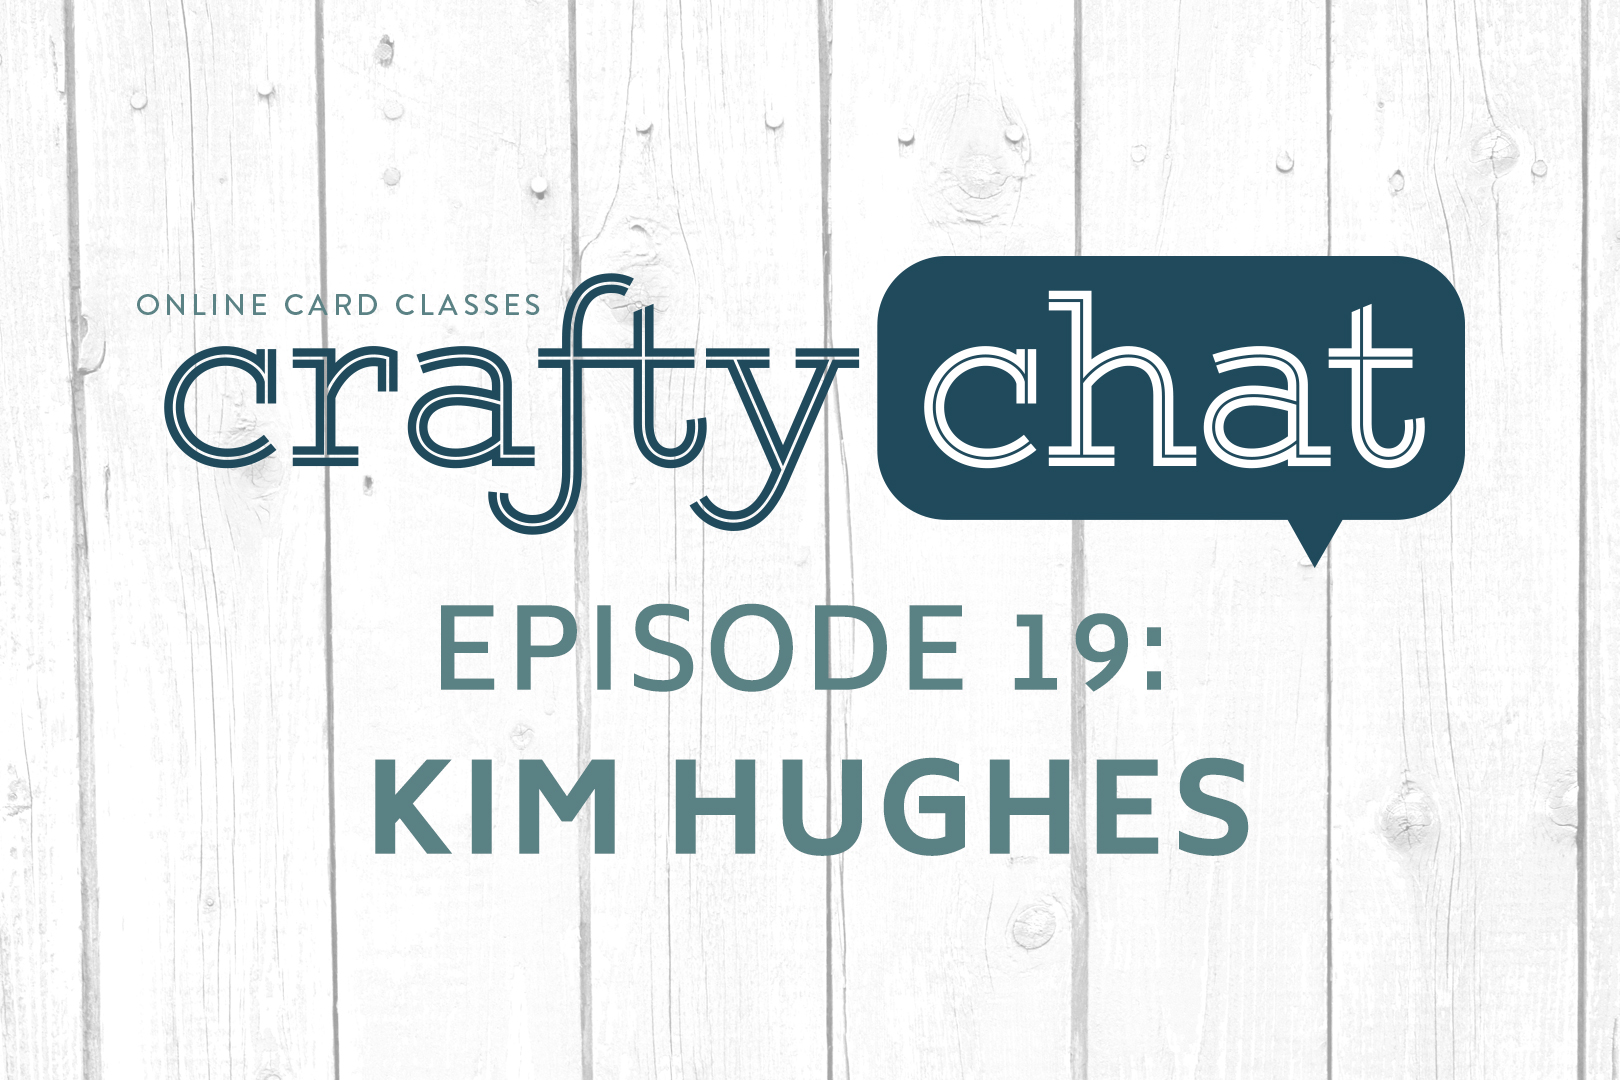 Crafty chat feature KH